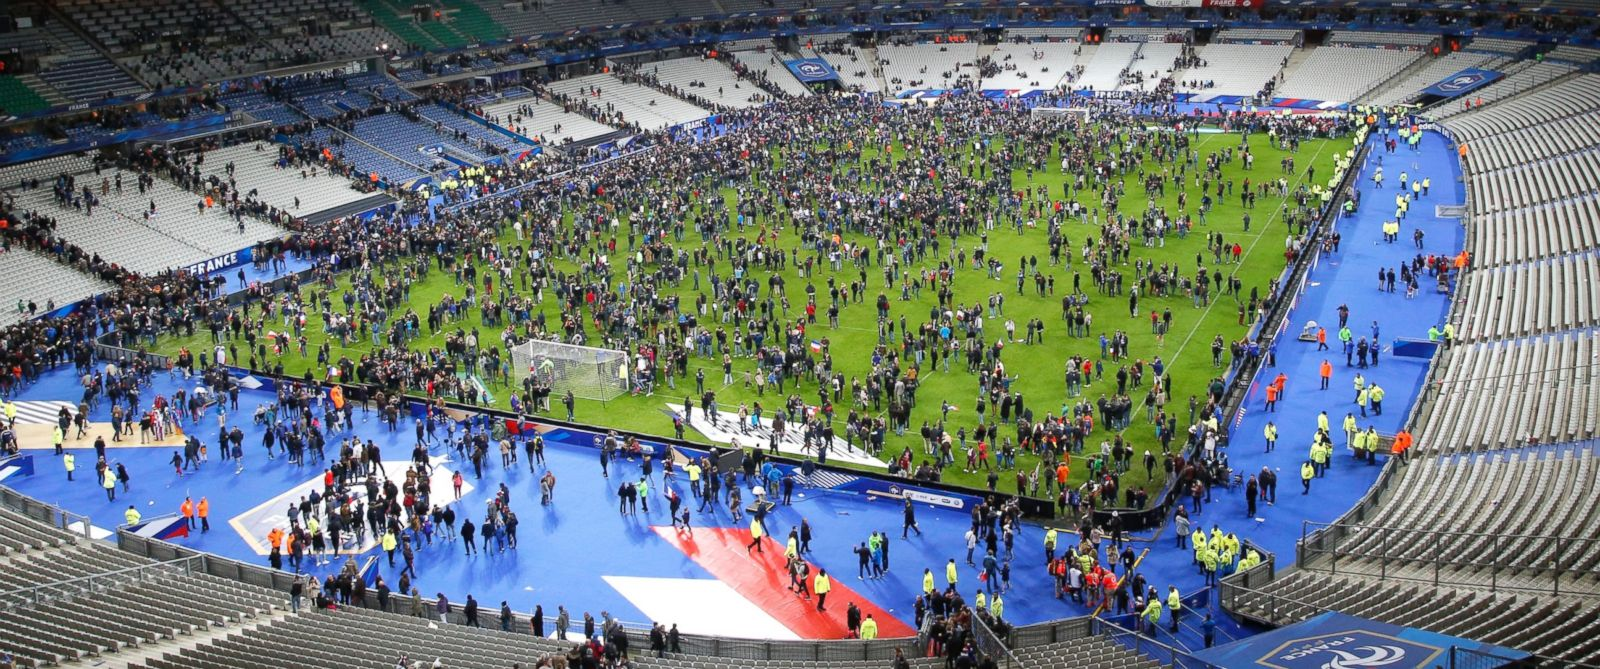 PHOTO: Spectators invade the pitch of the Stade de France stadium after the international friendly soccer France against Germany, Nov. 13, 2015 in Saint Denis, outside Paris.